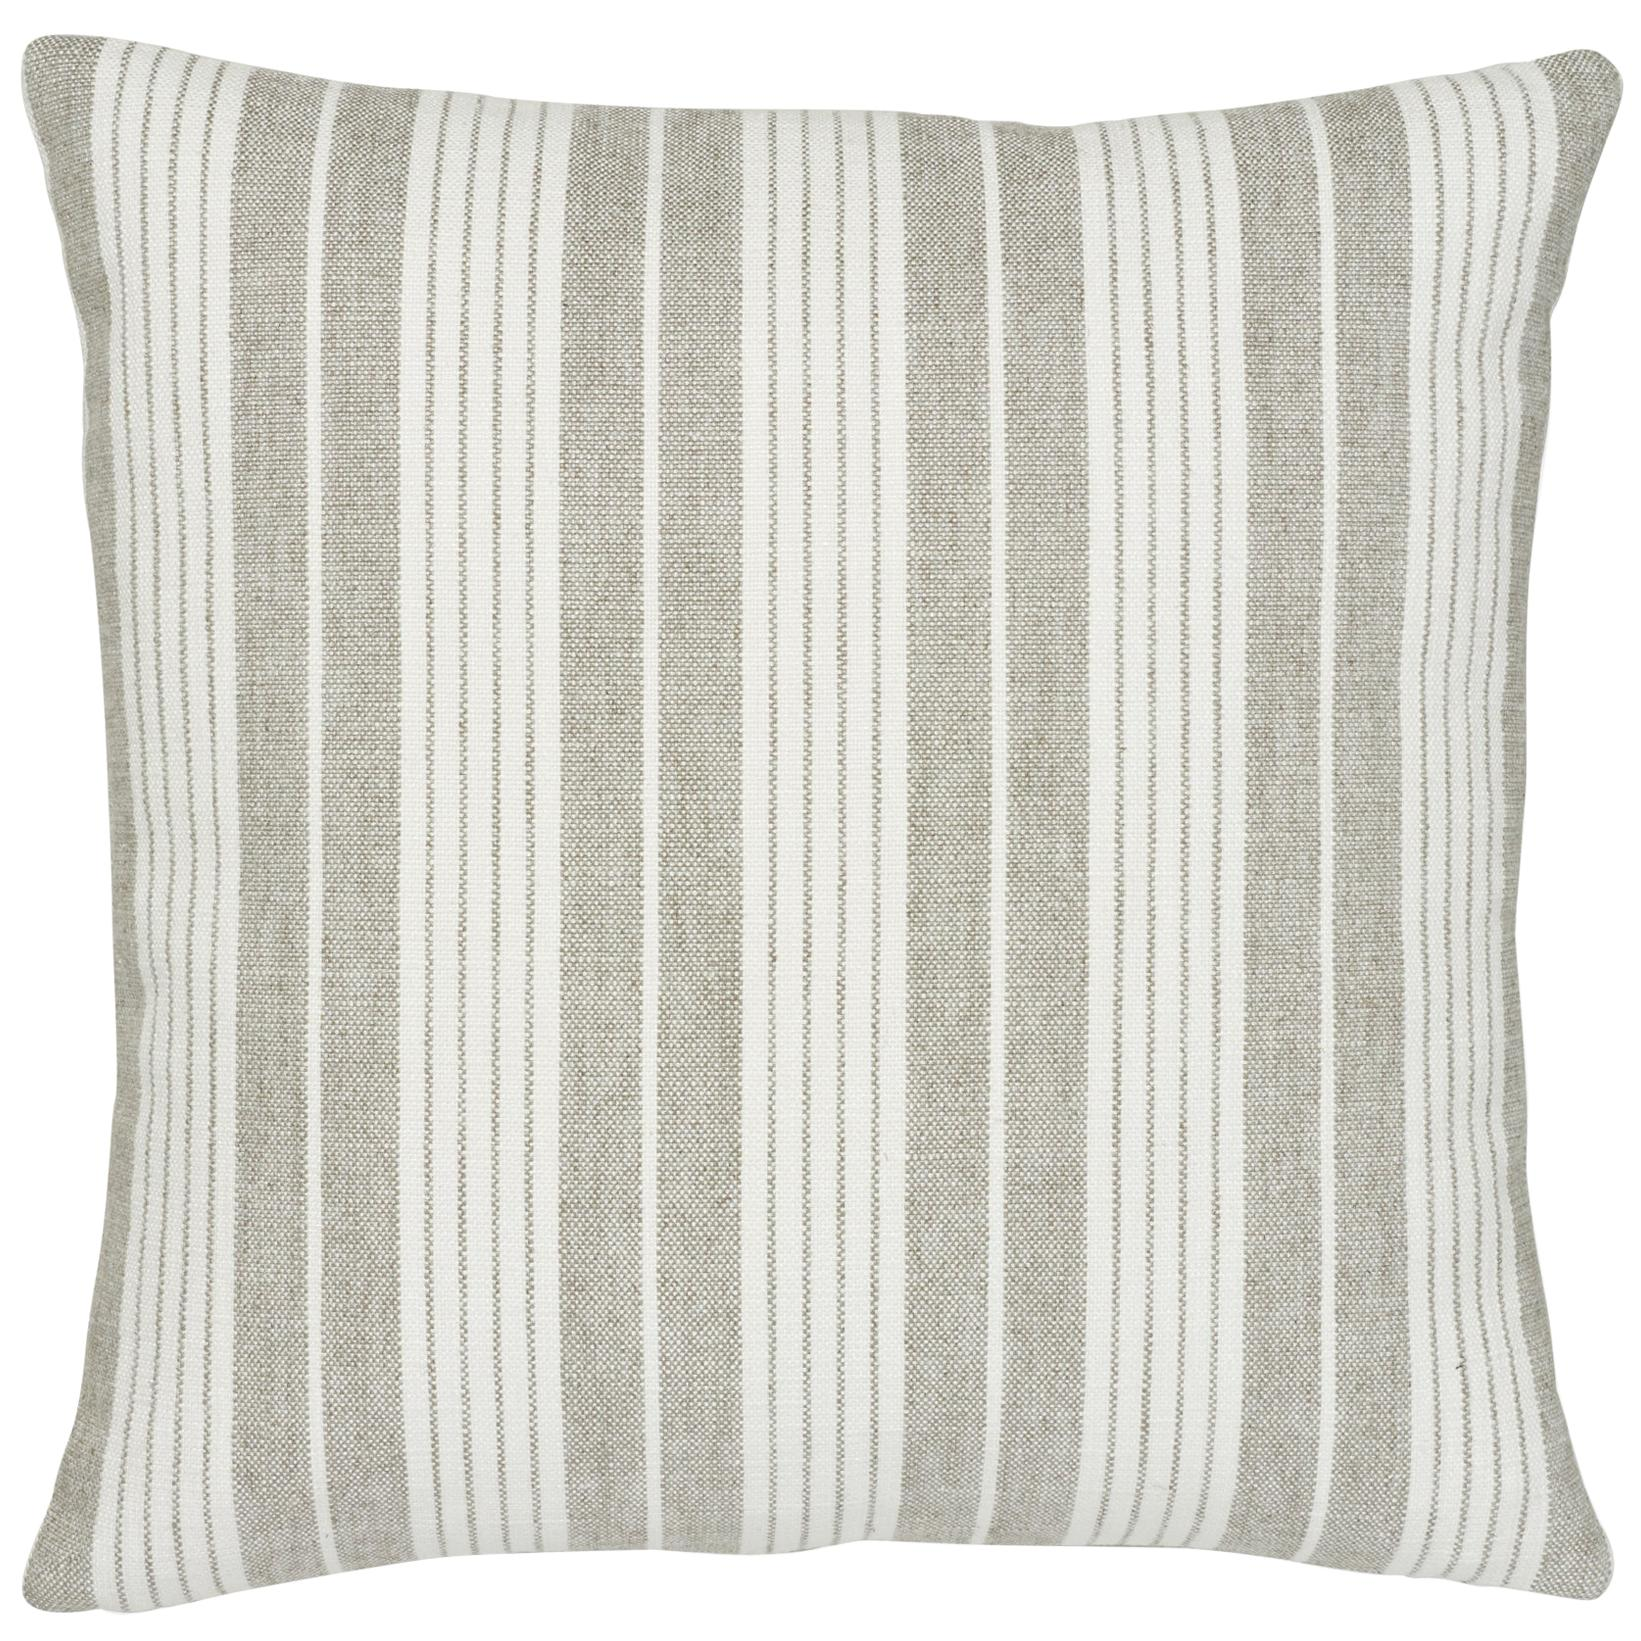 Schumacher Horst Stripe Grisaille Two-Sided Pillow